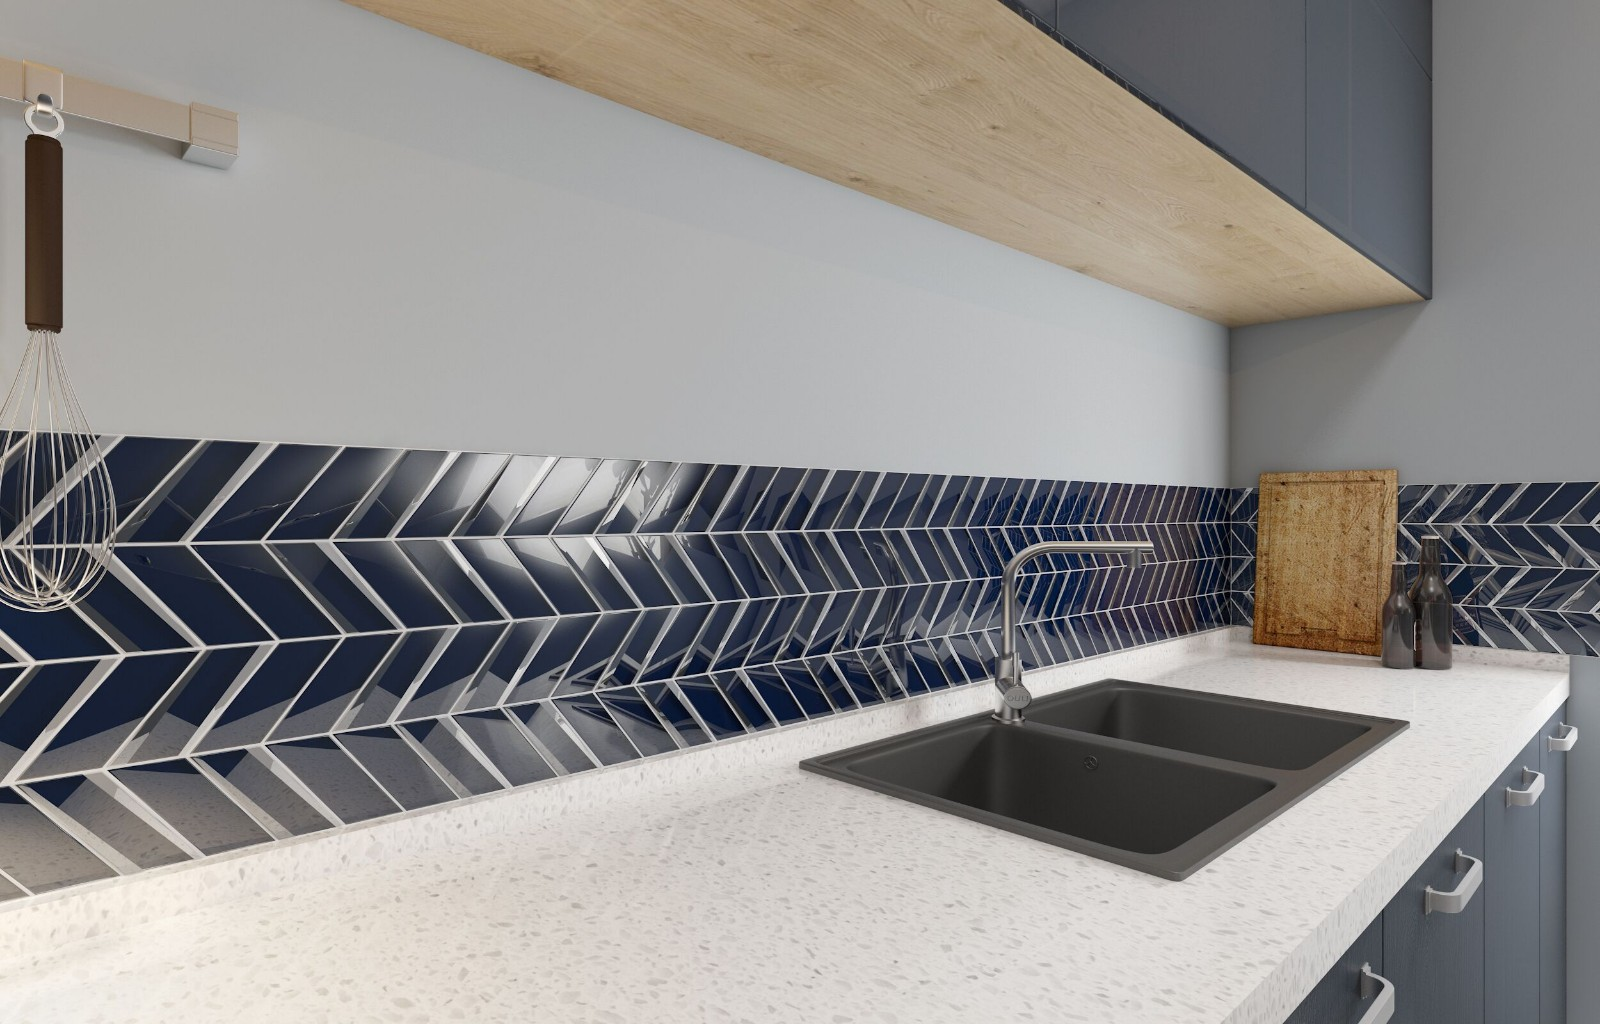 Heng Xing-Custom Kitchen Backsplash Tile Manufacturer, White Kitchen Backsplash |-5